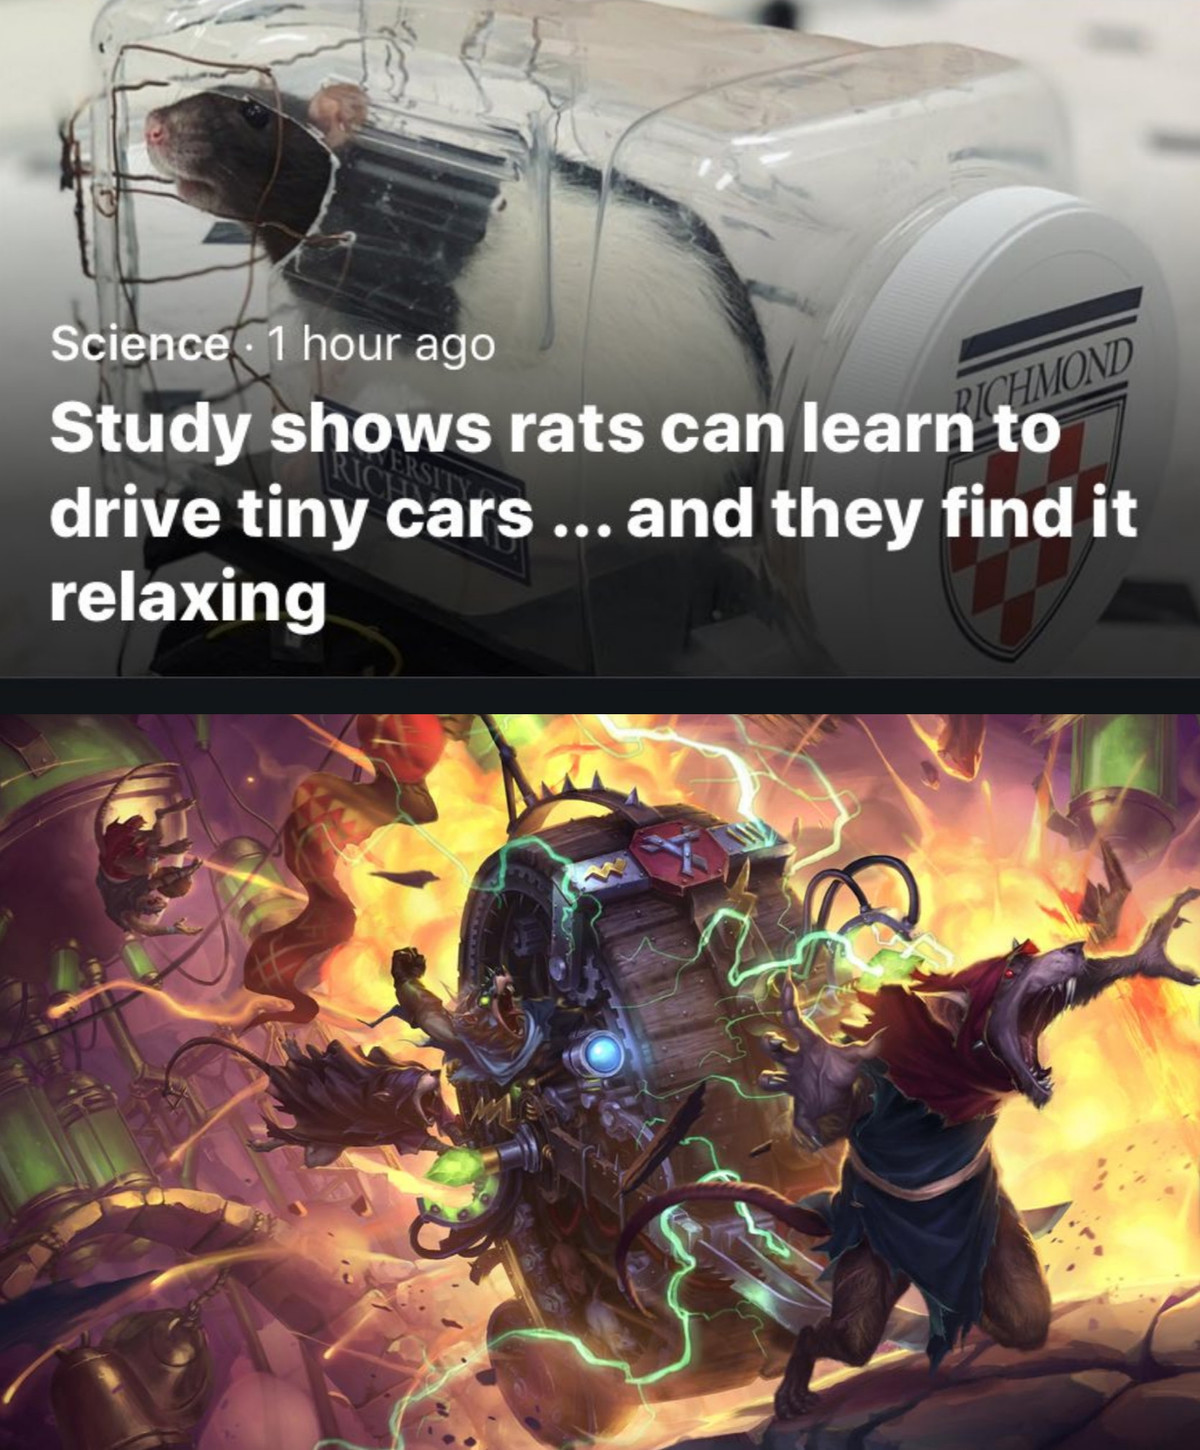 CAR-CAR GO FAST. .. Brb, gonna get a rat to be my designated driver from now on